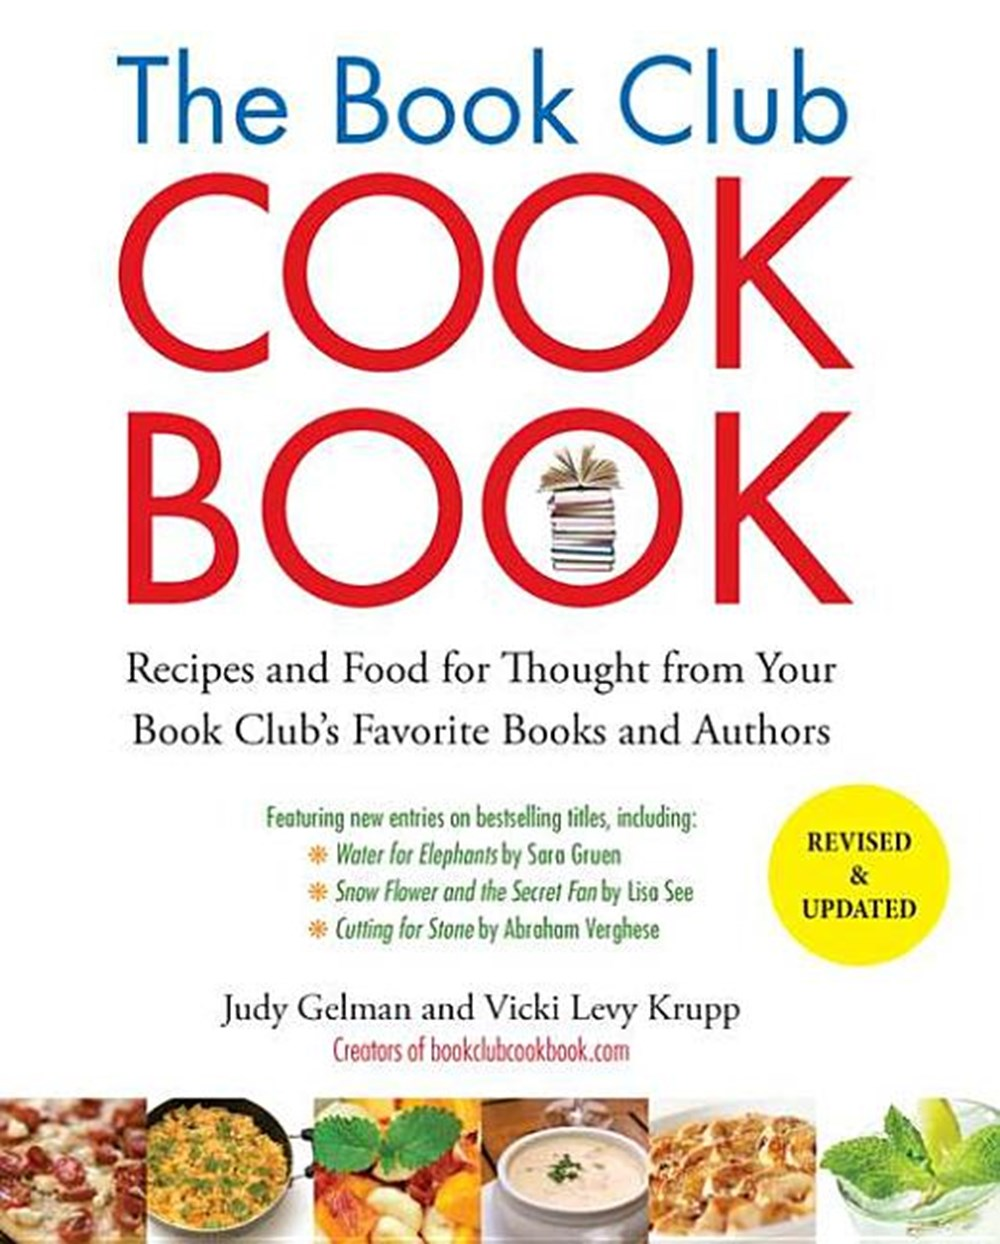 Book Club Cookbook Recipes and Food for Thought from Your Book Club's Favorite Books and Authors (Re